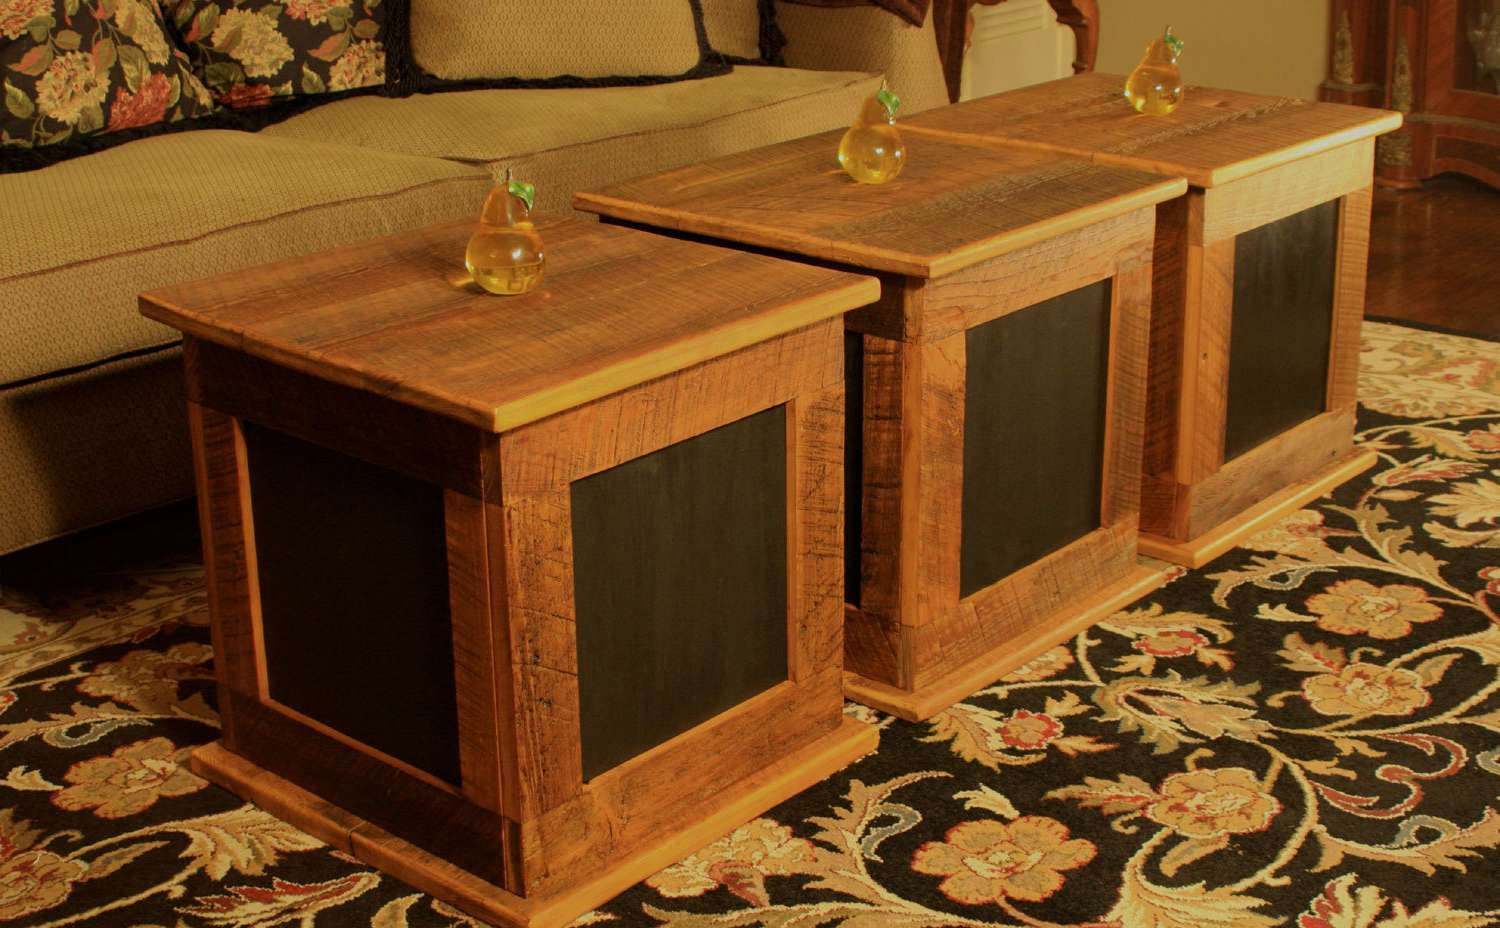 2017 Square Coffee Tables With Storage Cubes Regarding Storage Cube Coffee Table. Bunching Table (View 7 of 20)